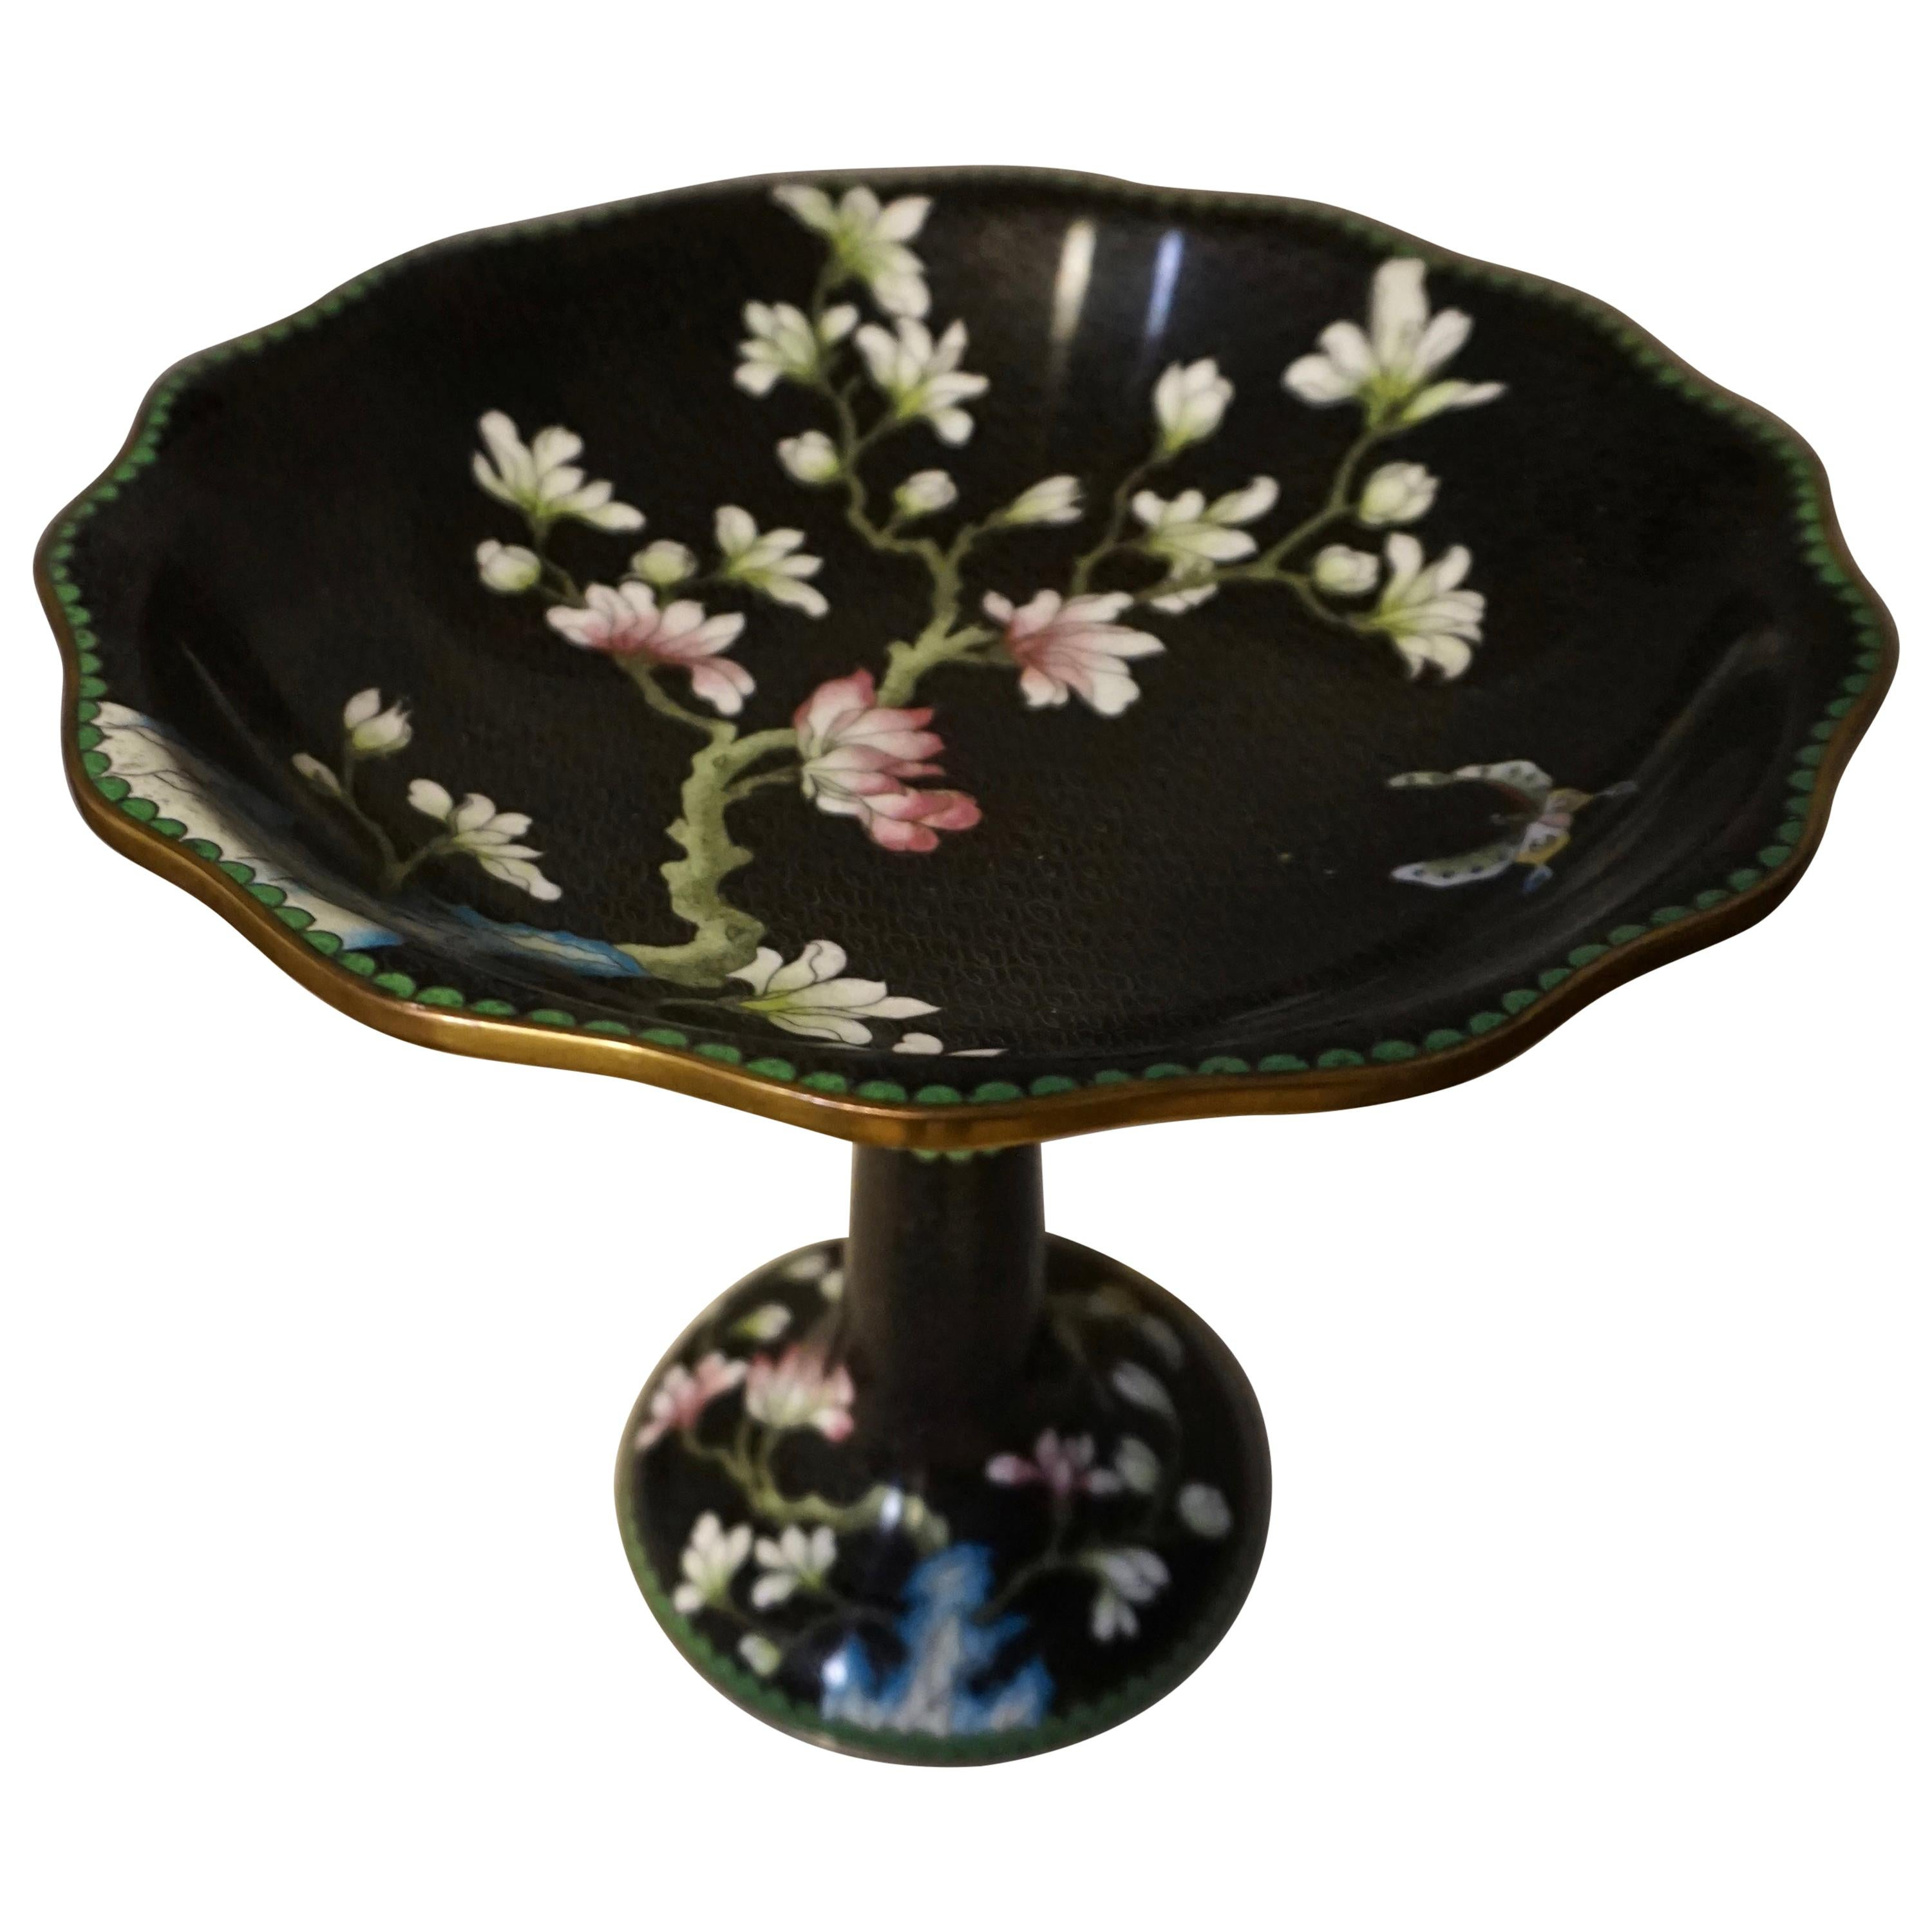 Early 20th Century Chinese Spring Night Decorative Cloisonne Vase on Stand